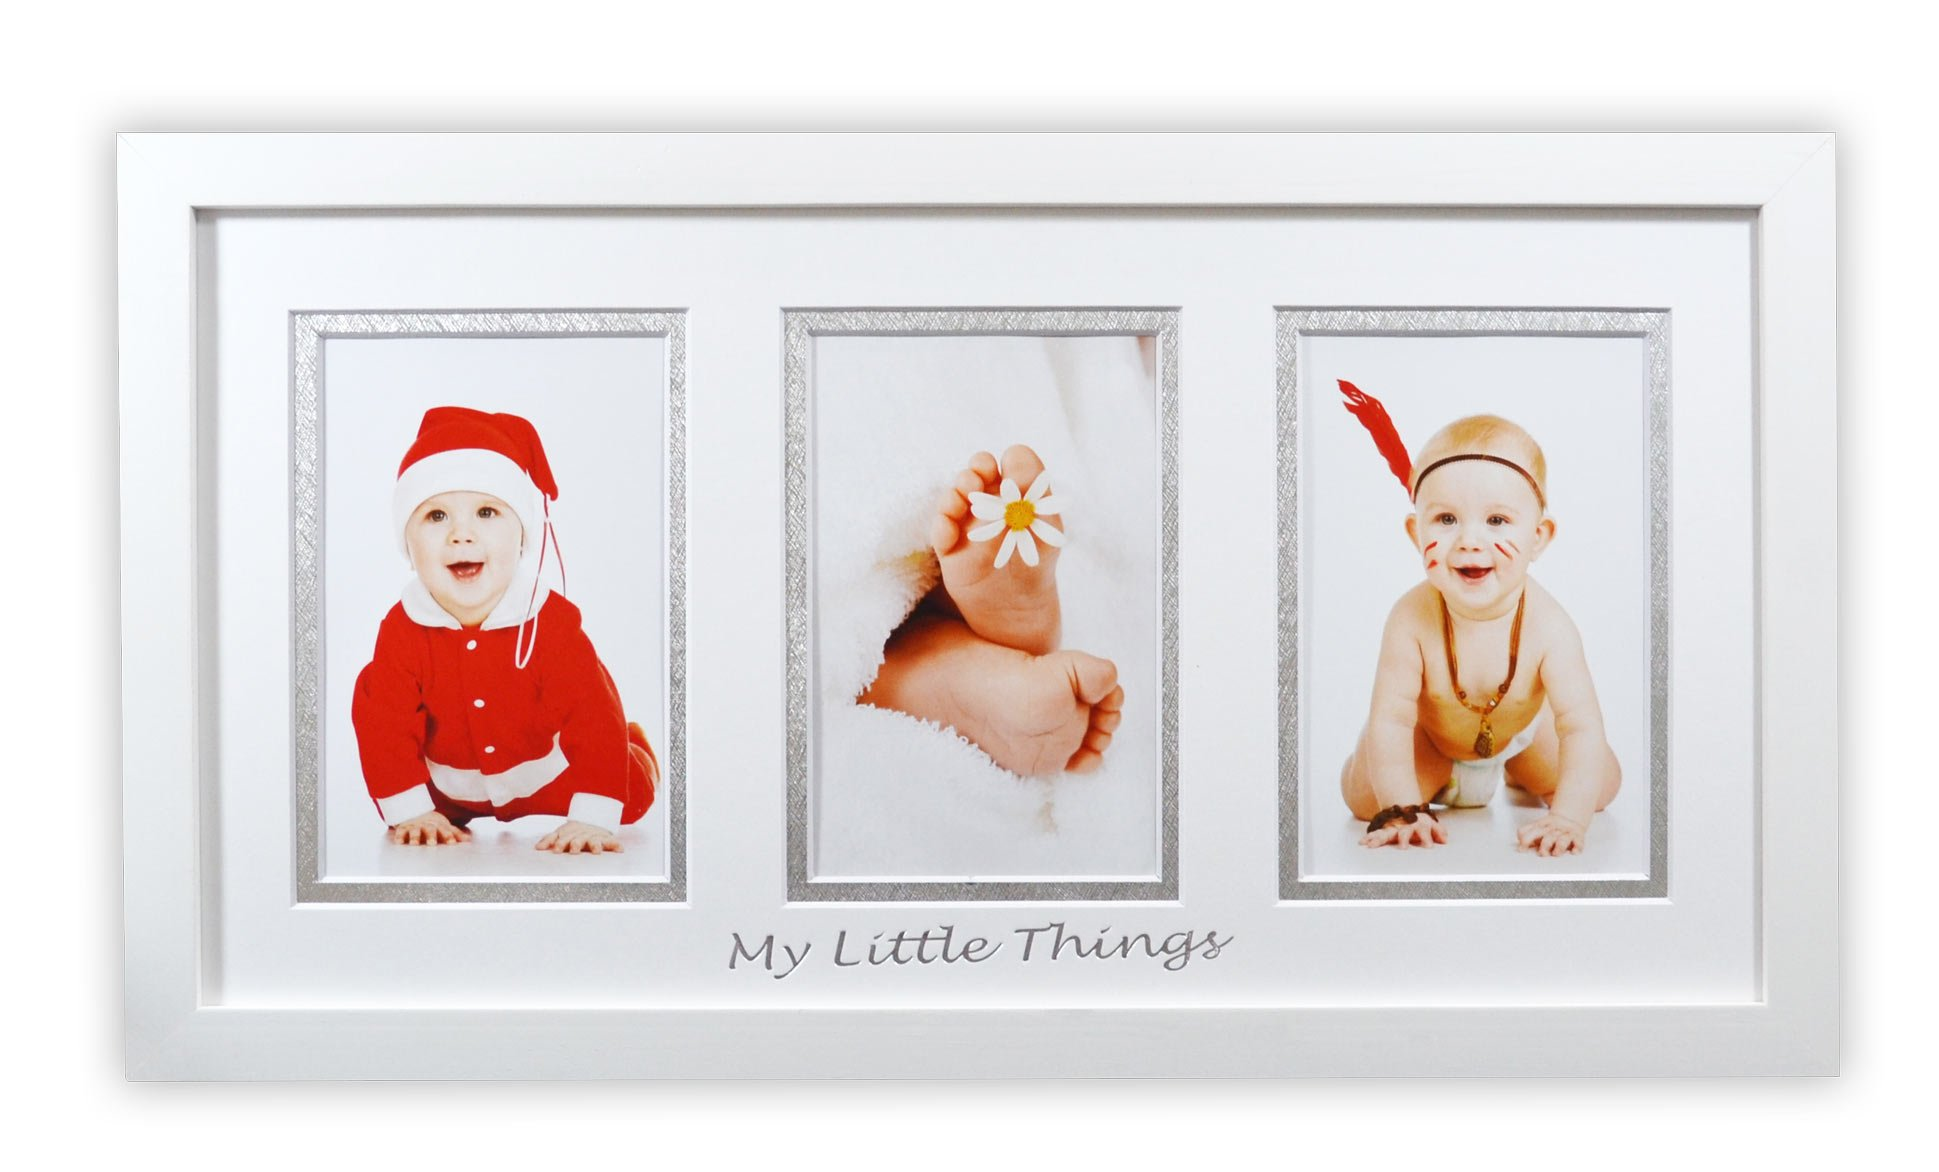 Golden State Art Baby Frames Collection, 8.5x16.3-inch Photo Wood Frame with White/Silver Double Mat for 3 4x6-inch Pictures, White by Golden State Art (Image #1)